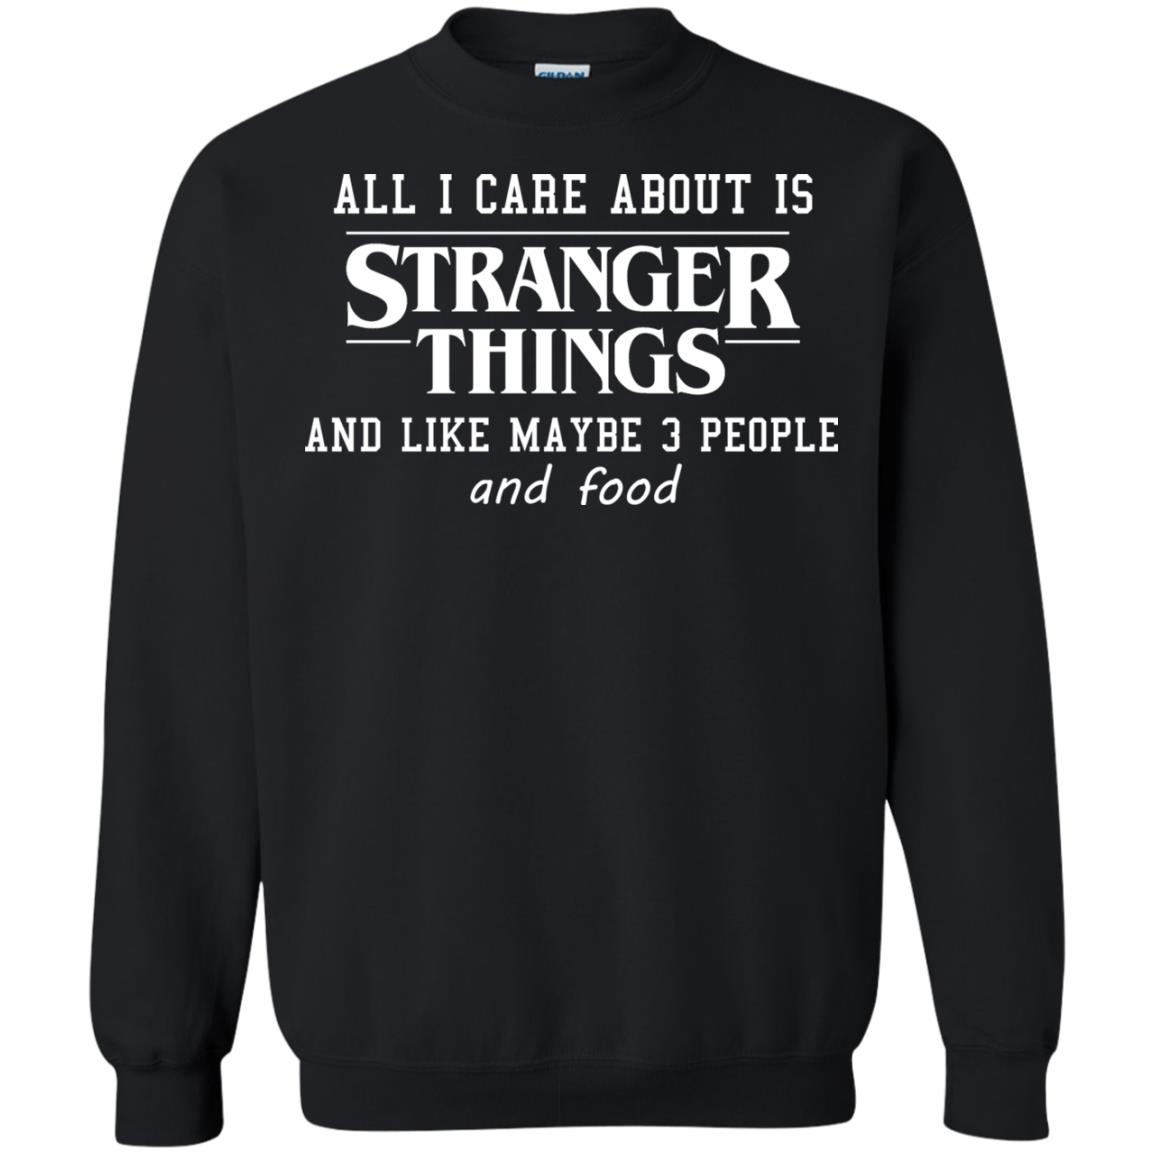 image 3068 - All I care about is Stranger Things & like maybe 3 people & food shirt